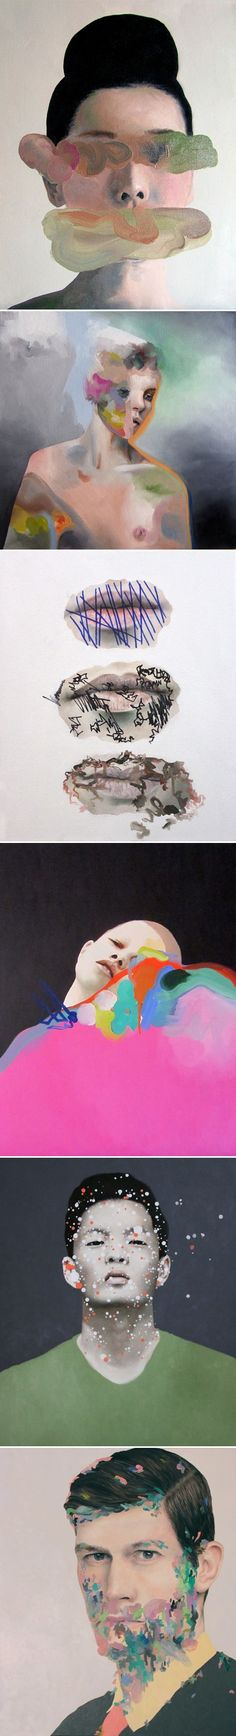 Andrea Castro imperfections forms colours shades pattern bright liquid human #OilPaintingPeople